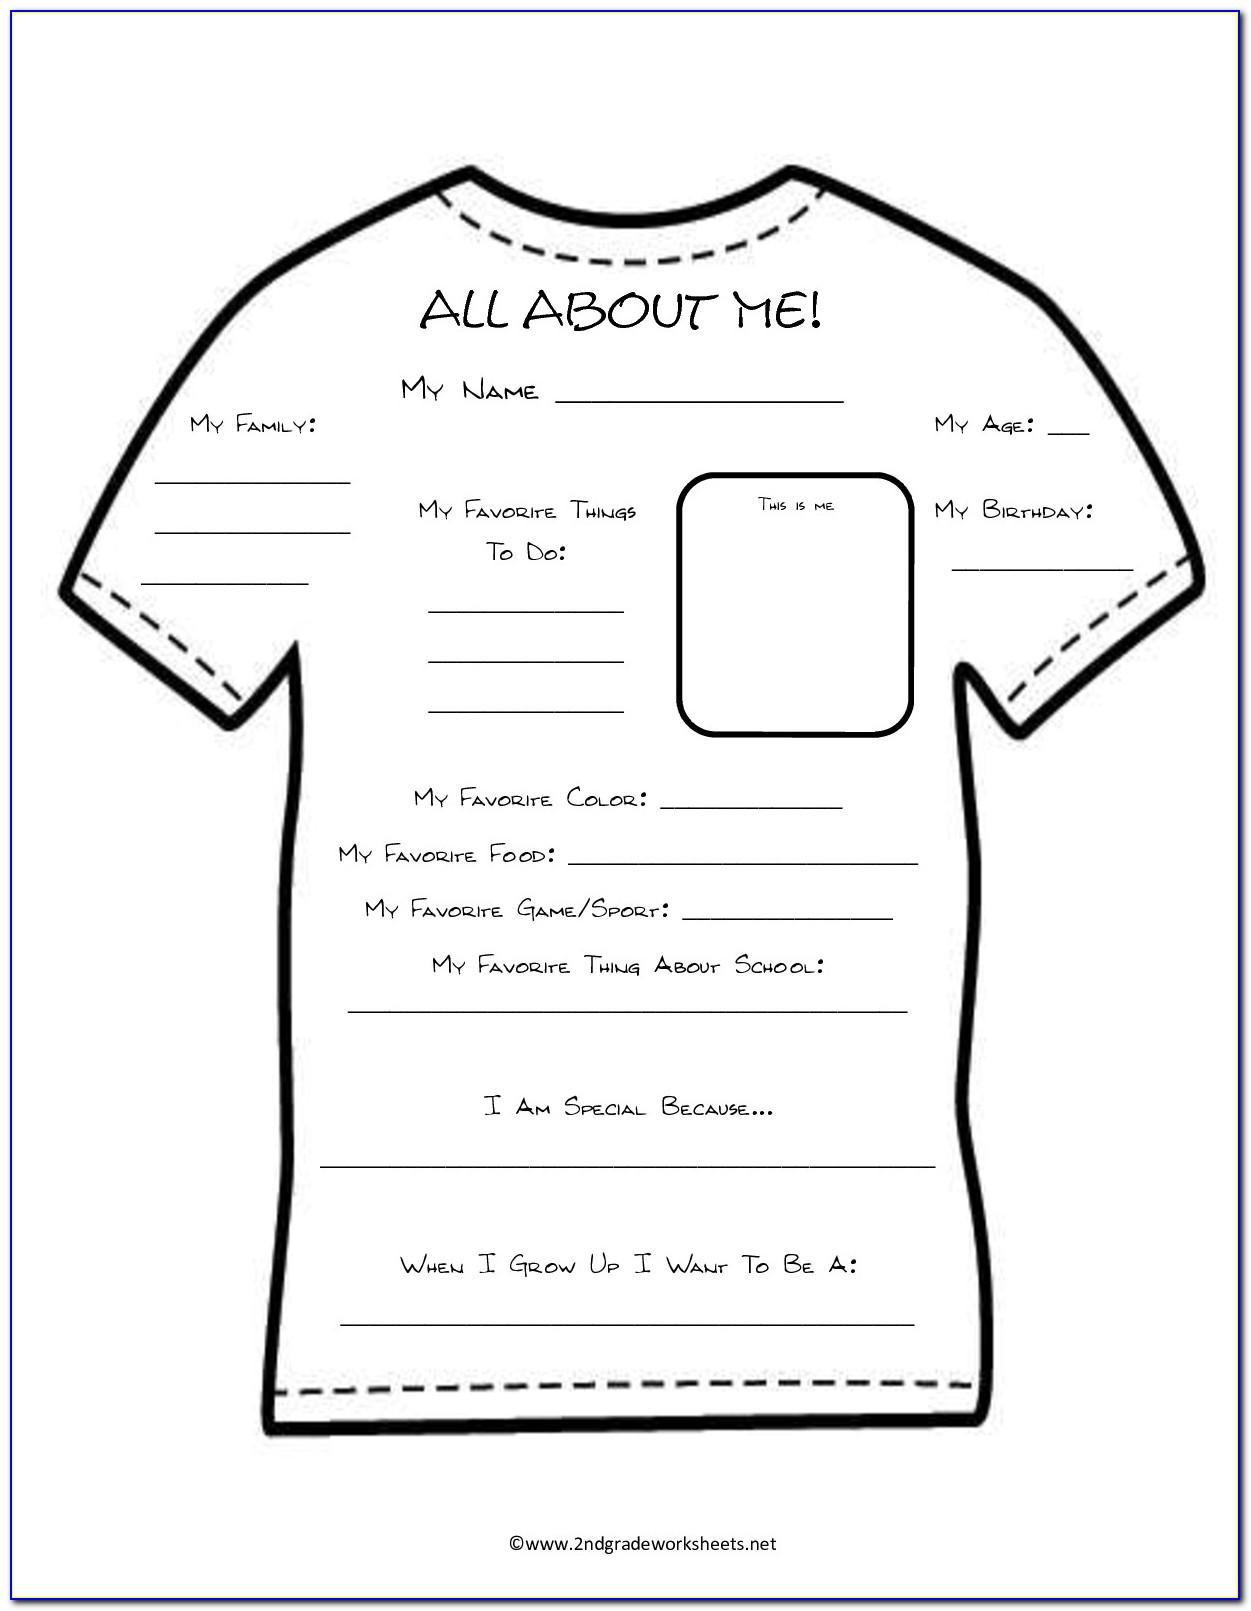 All About Me Poster Template Free